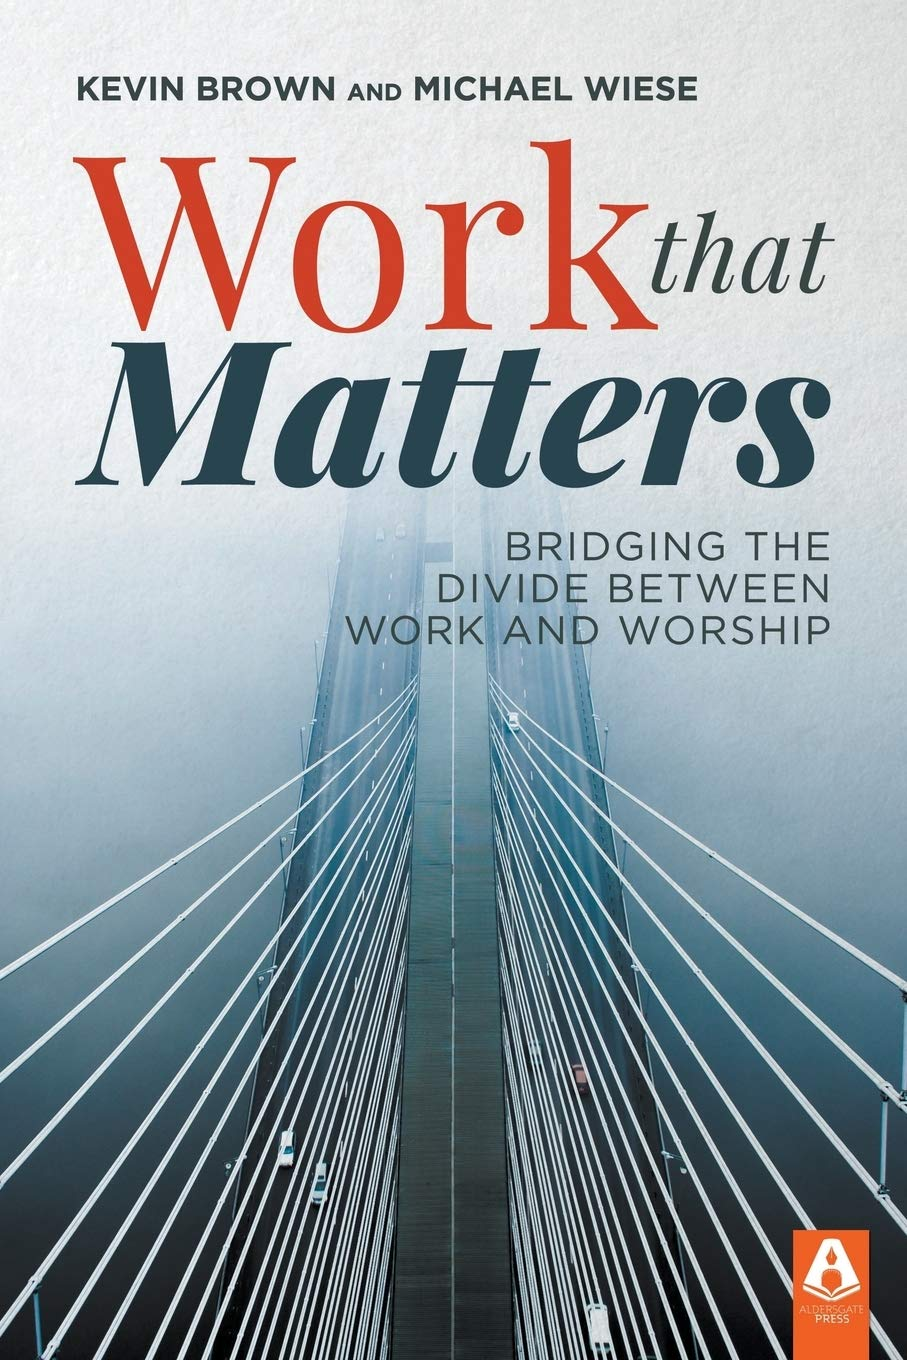 Work That Matters: Bridging the Divide Between Work and Worship